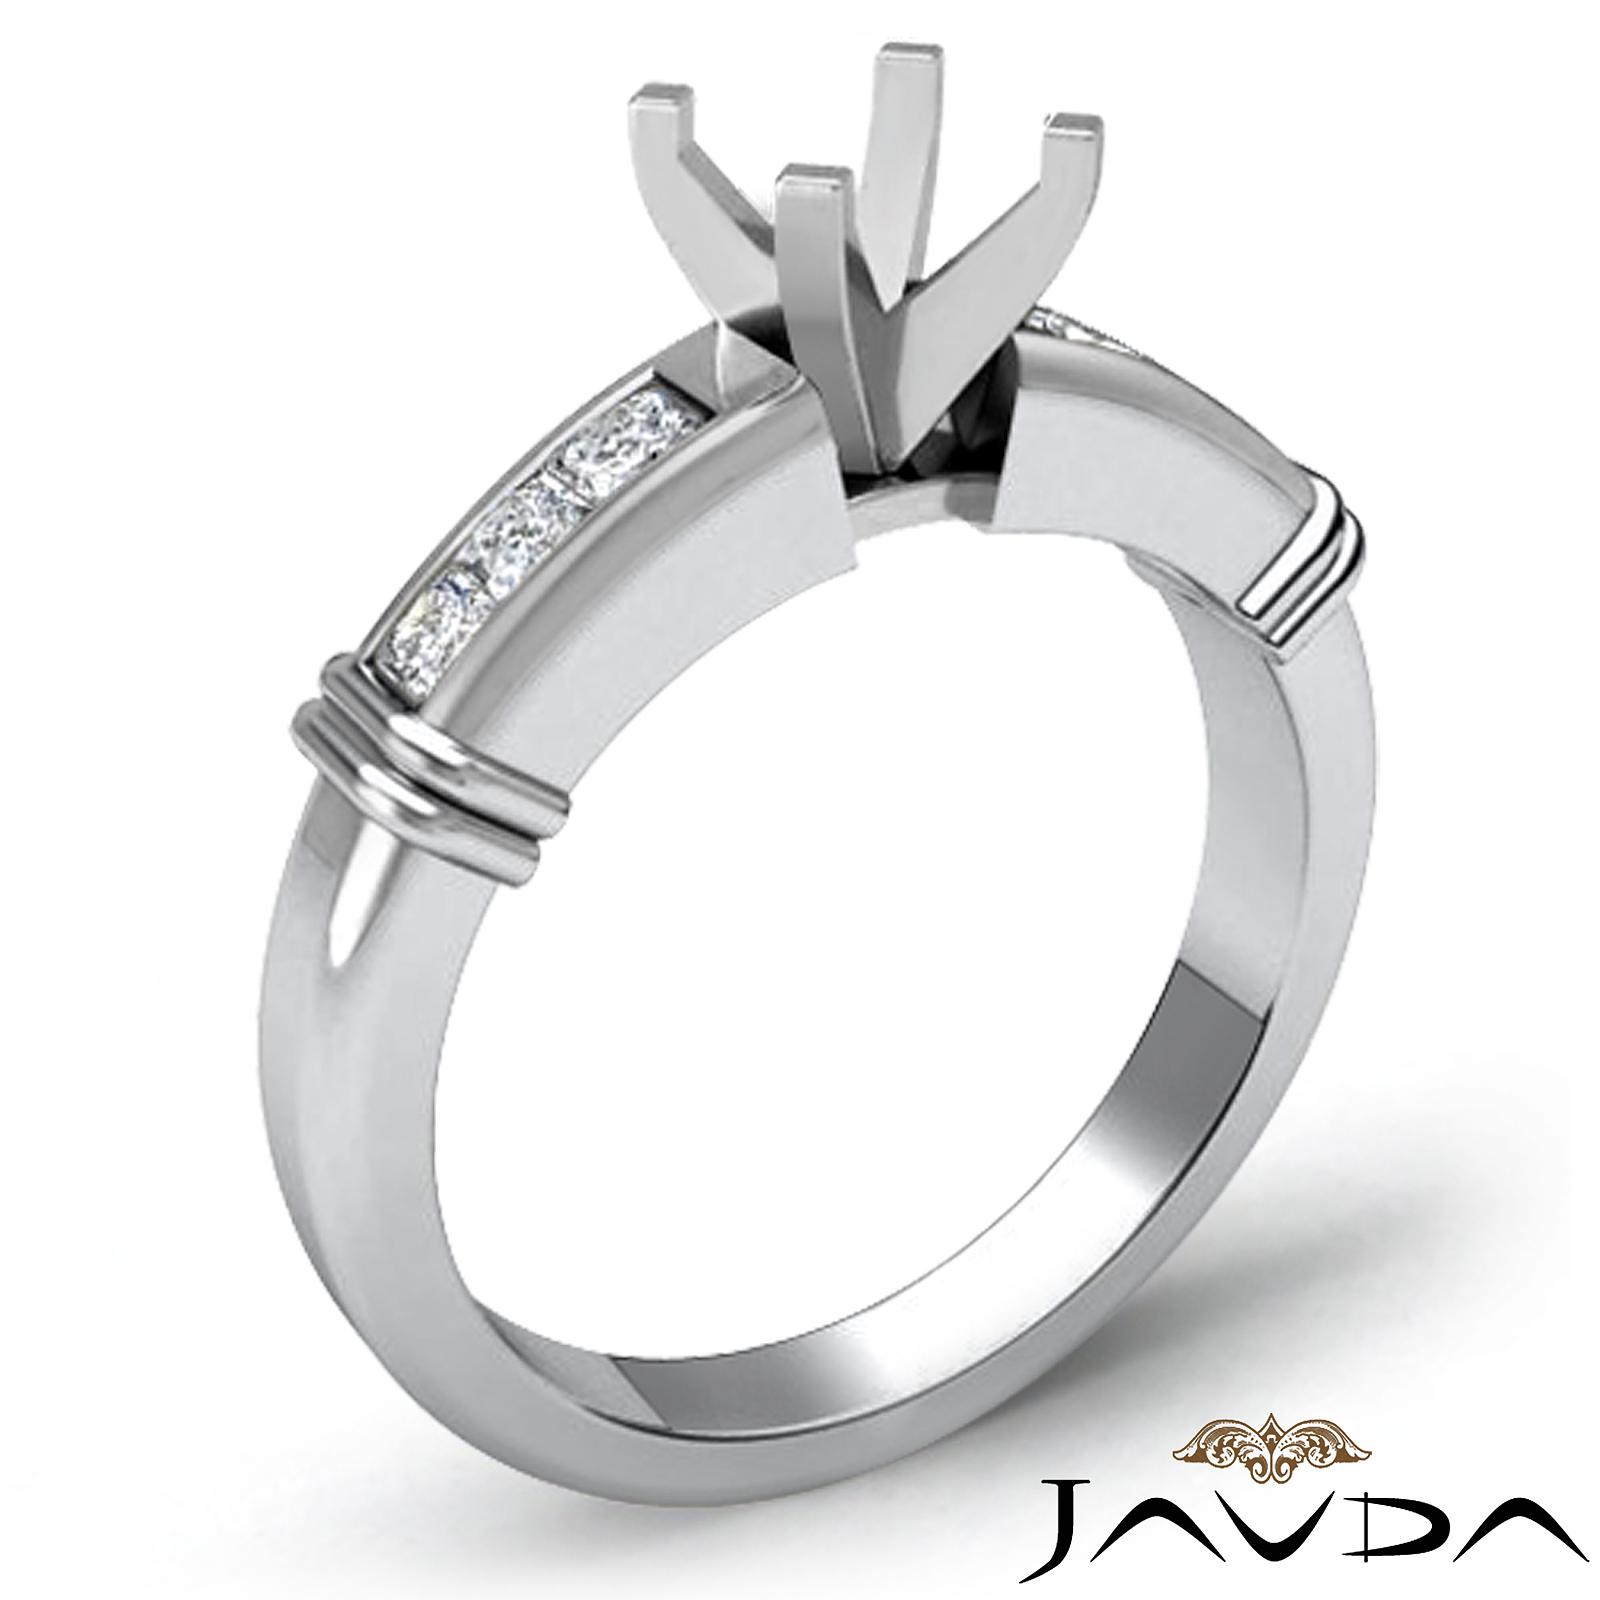 engagement channel setting ring semi mount